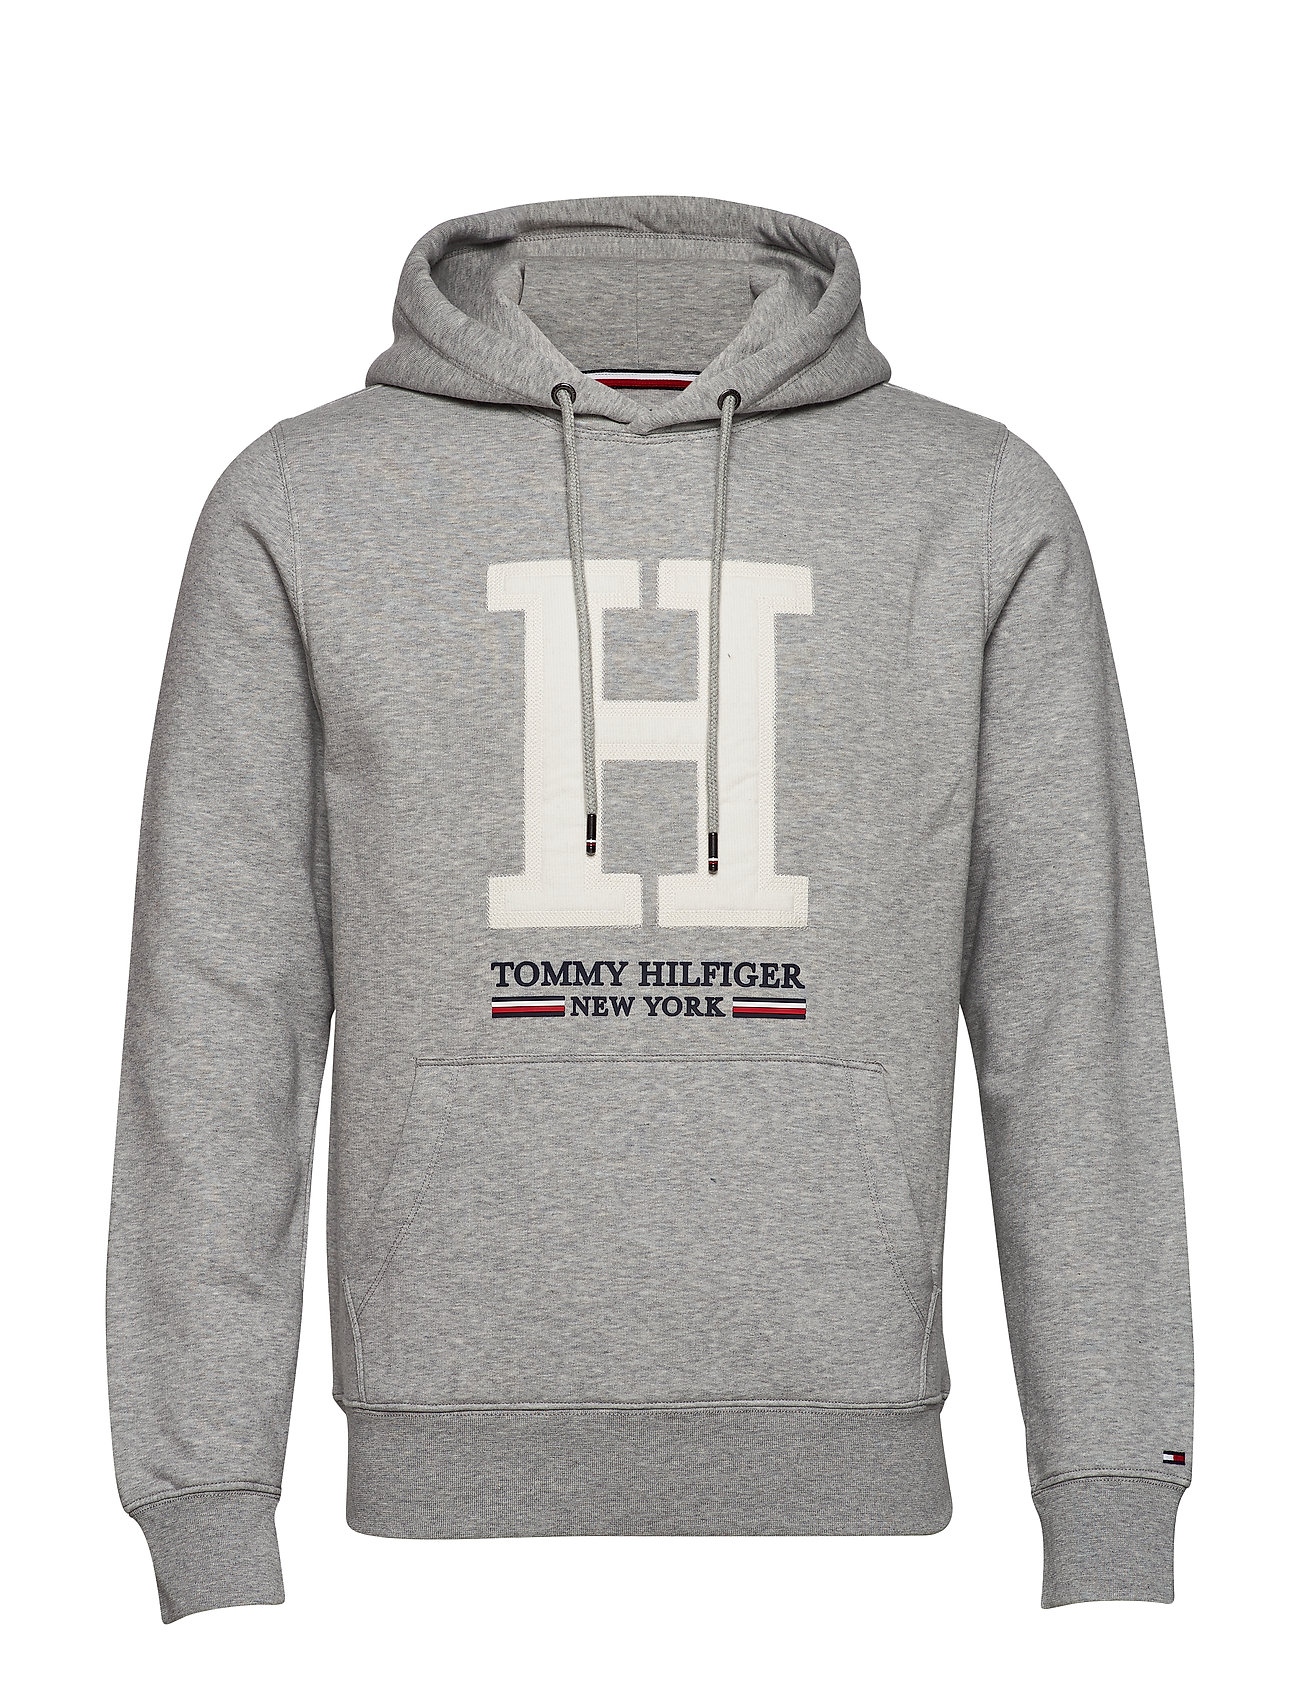 Tommy Hilfiger APPLIQUE ARTWORK HOODY - CLOUD HEATHER